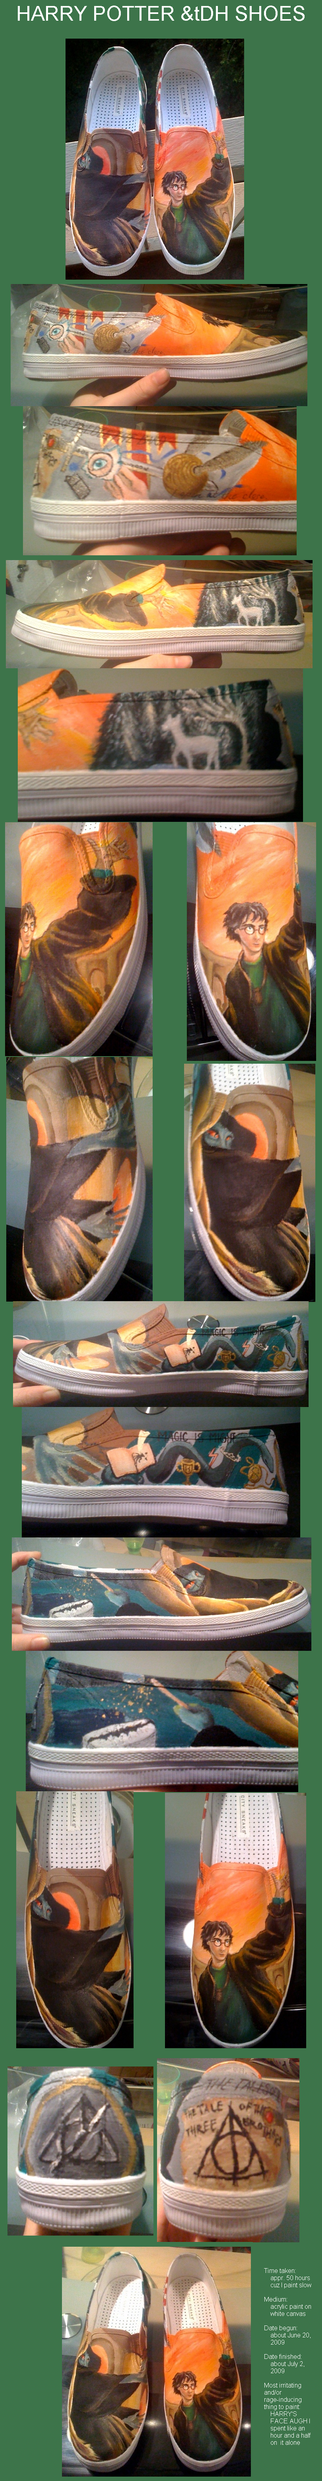 DH-inspired pottah shoes by Curious-Kitten